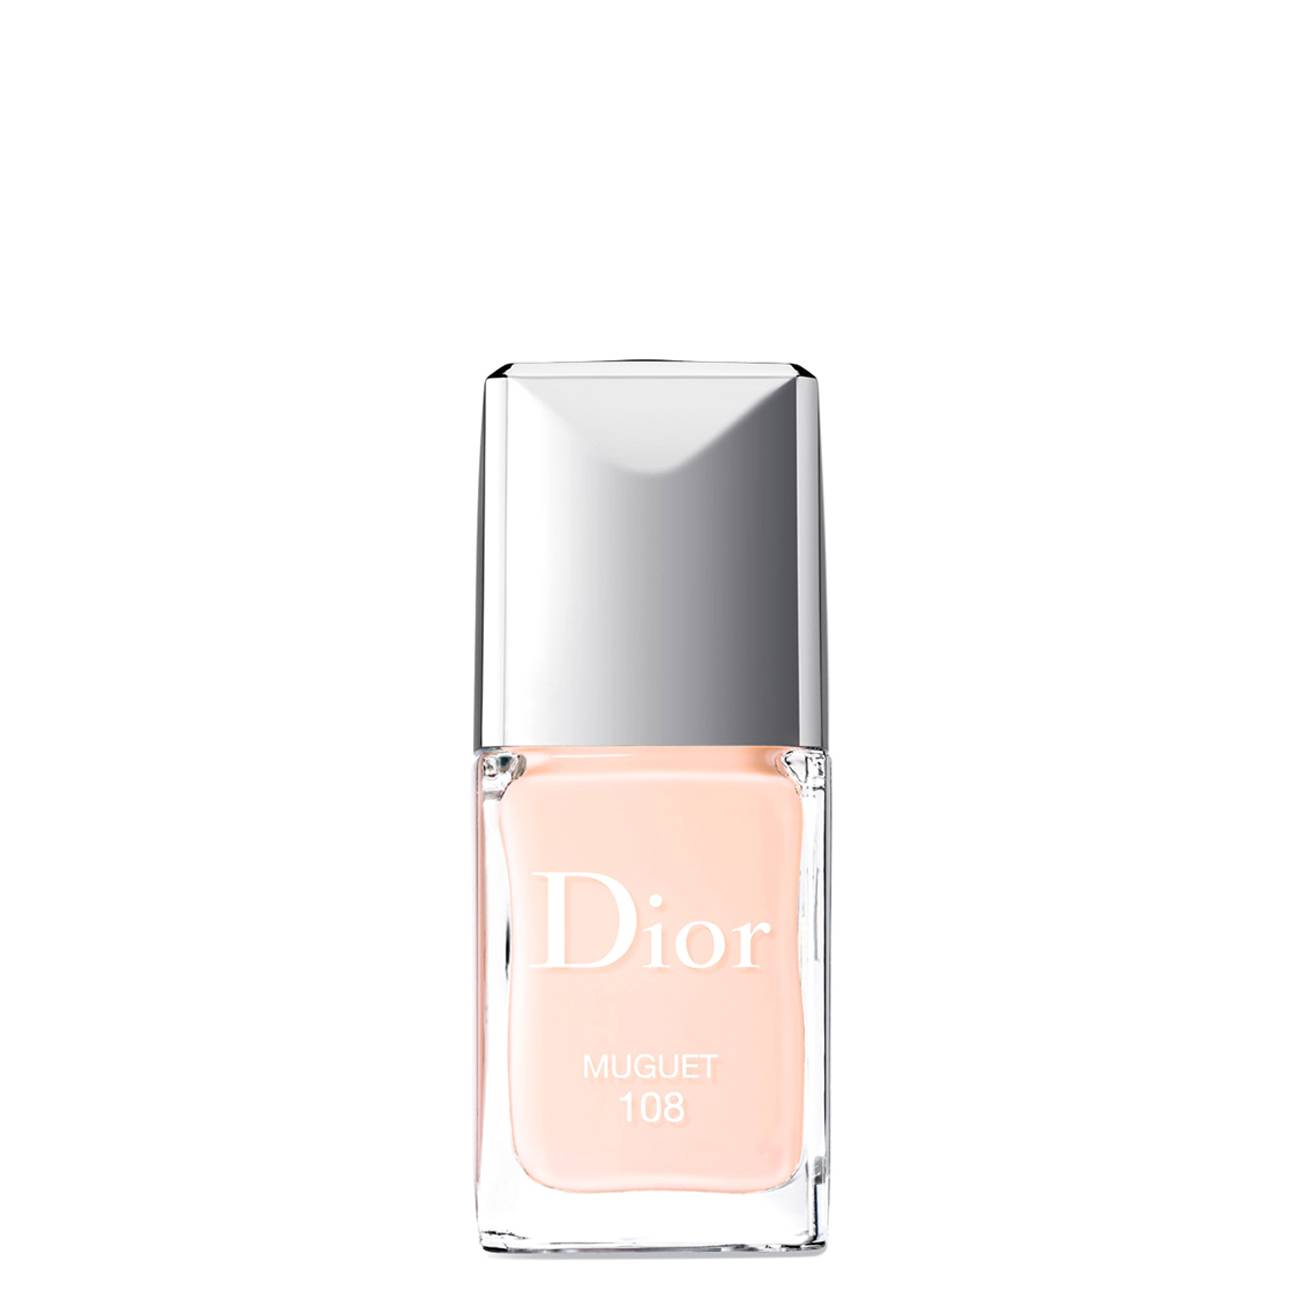 Vernis 108 10 Ml Dior imagine 2021 bestvalue.eu